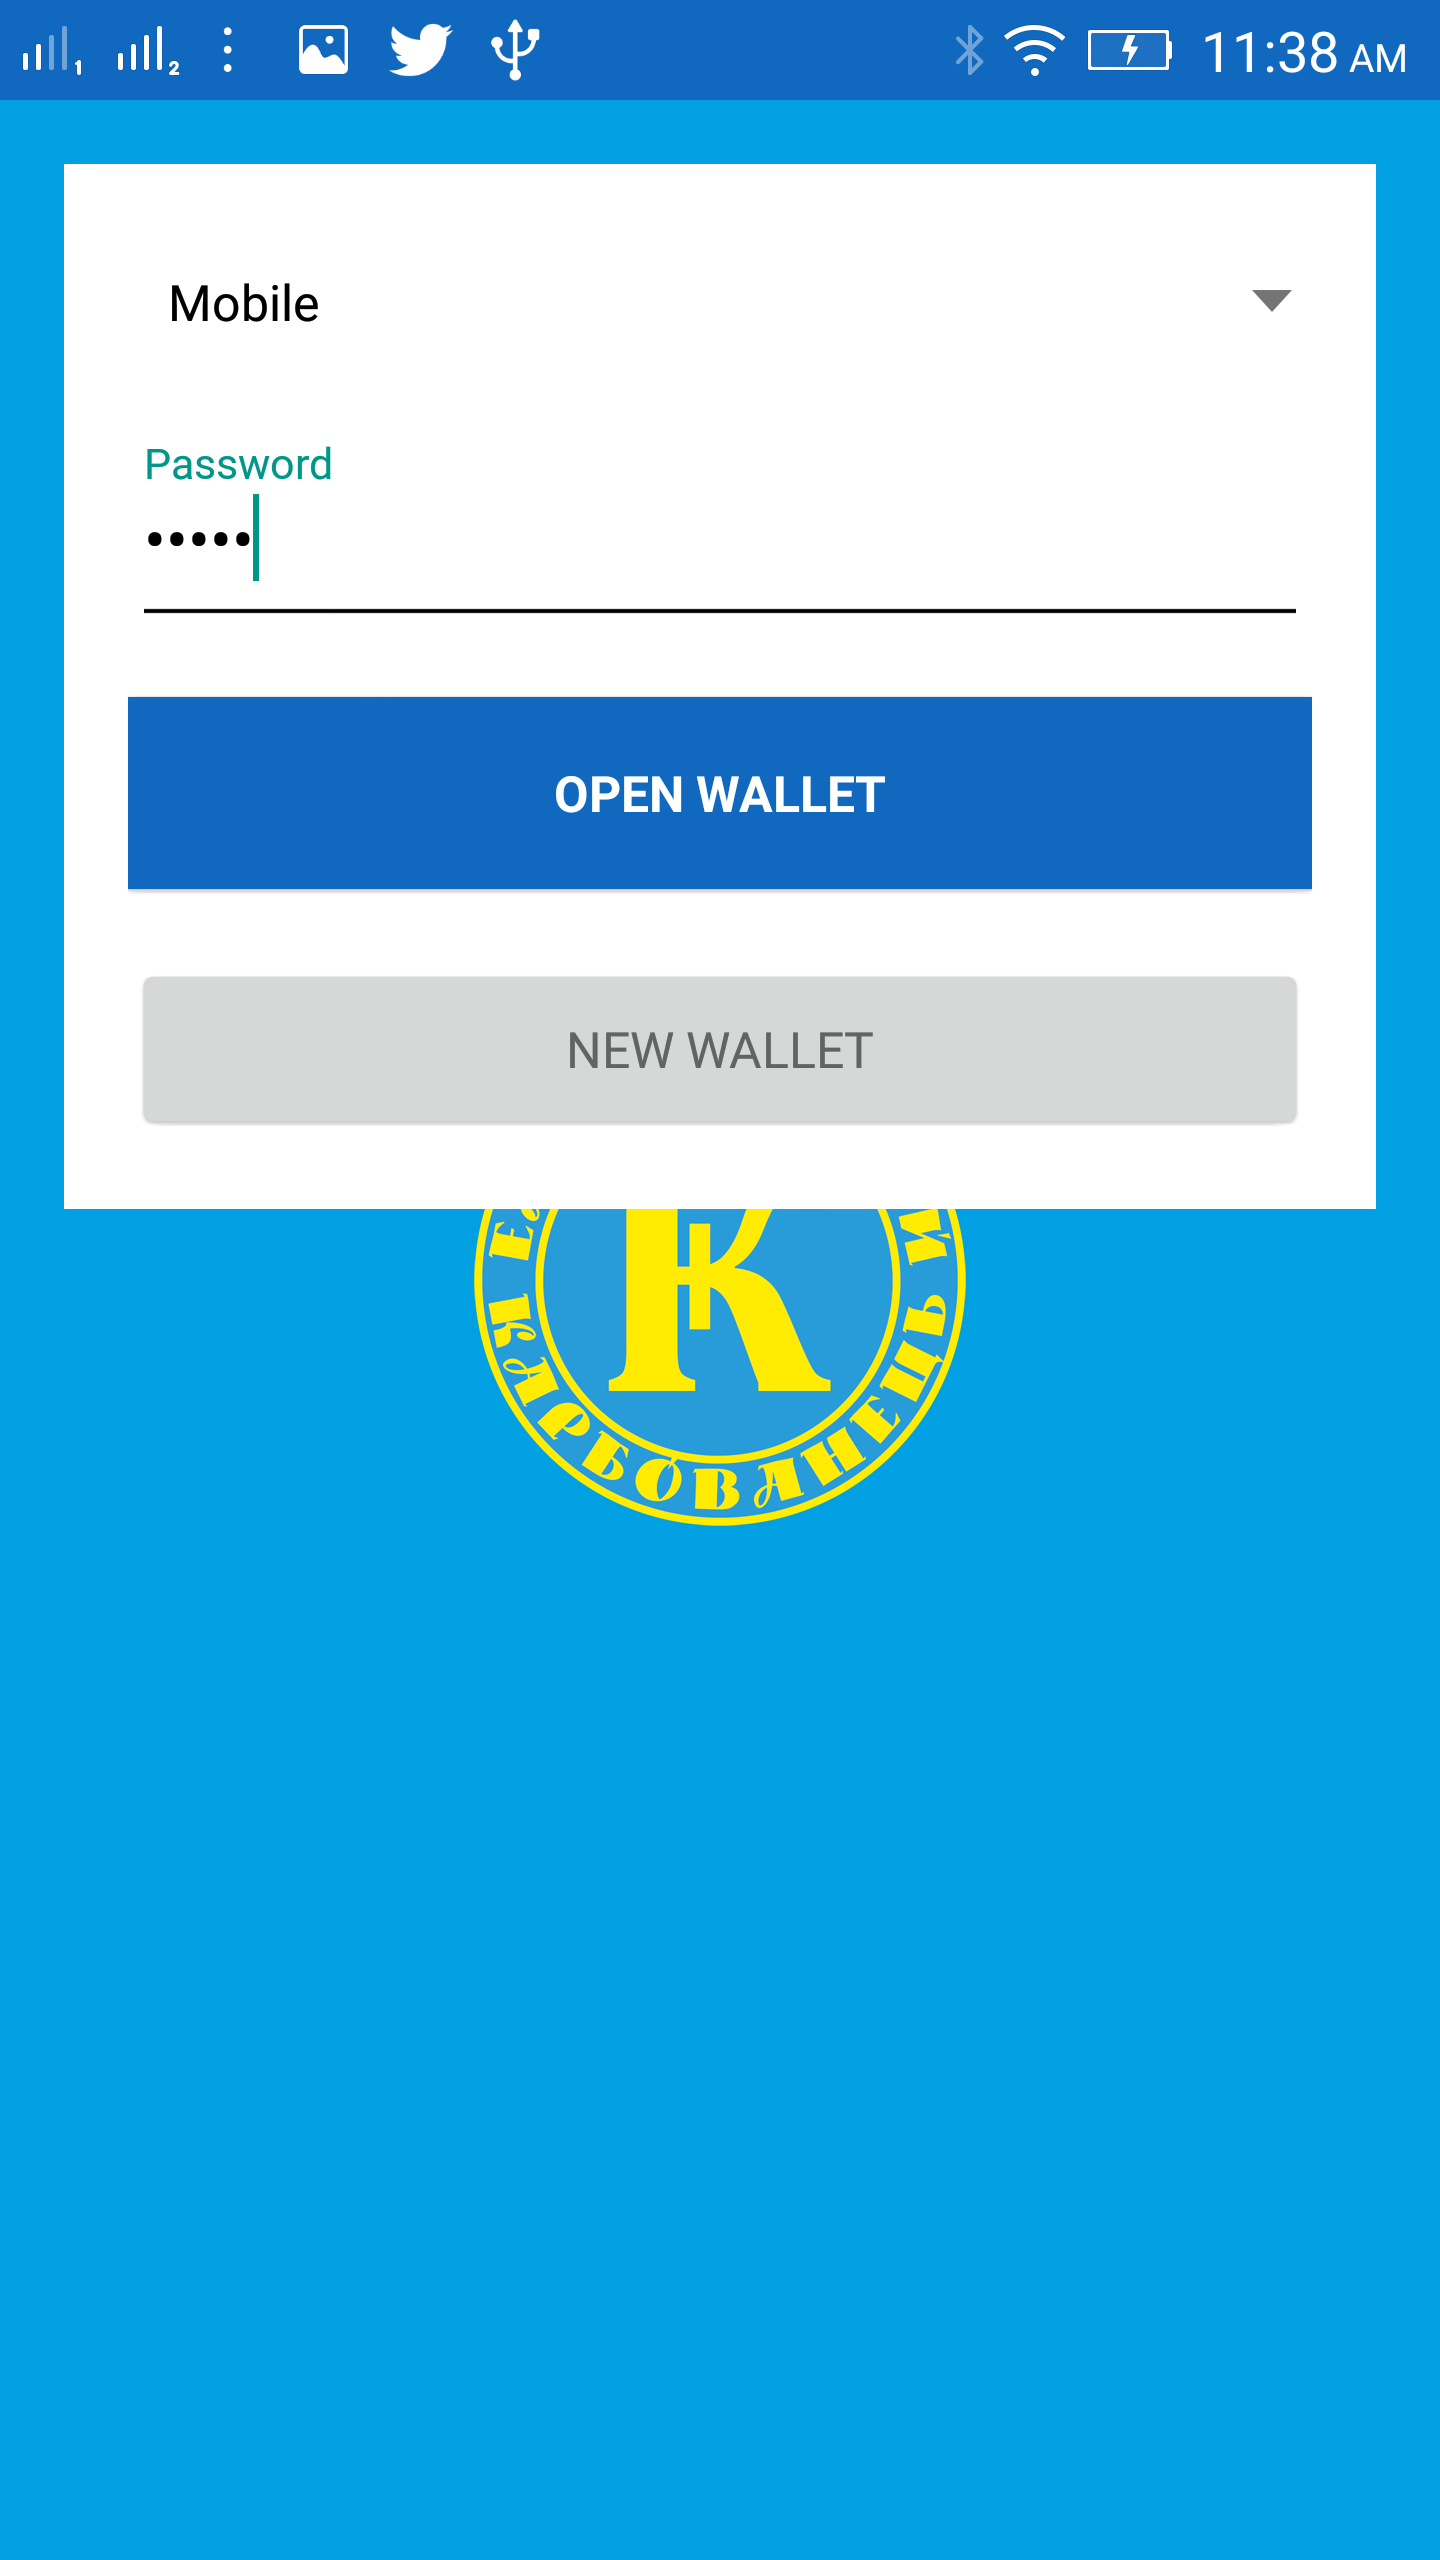 Mobile Wallet App Login